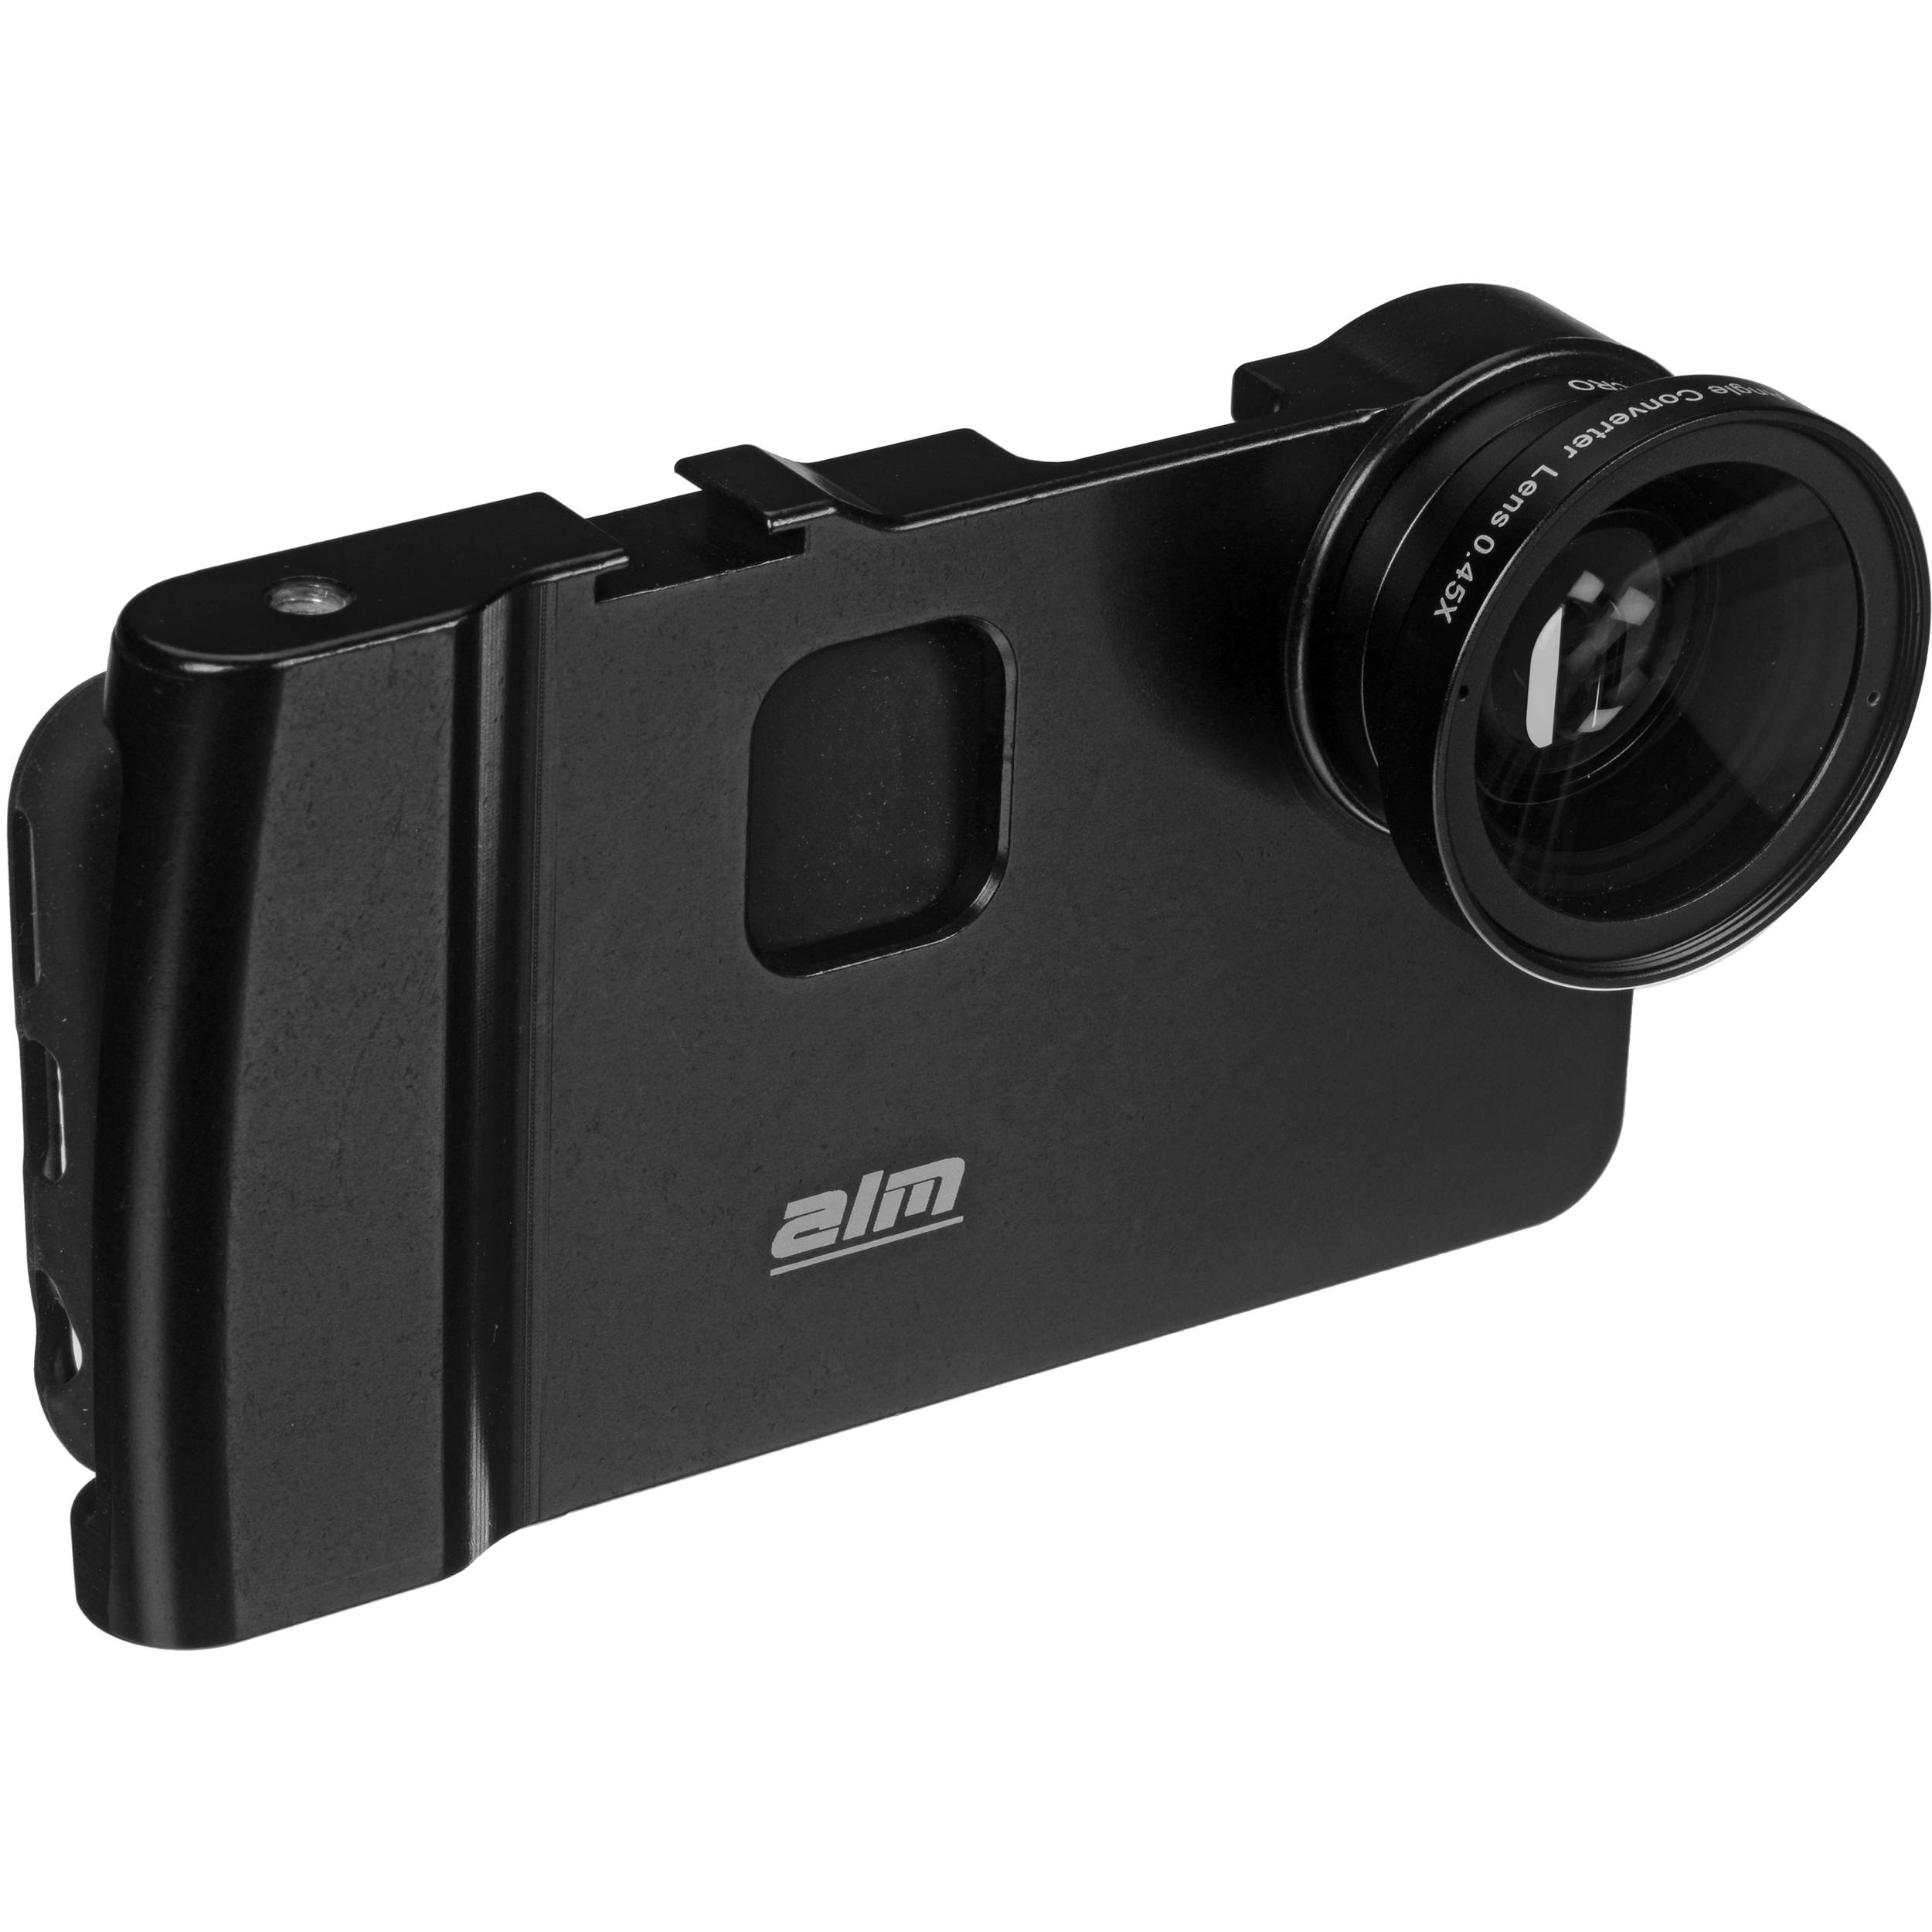 iphone wide angle lens alm mcamlite mount with wide angle amp macro lens 12060 b amp h 15536